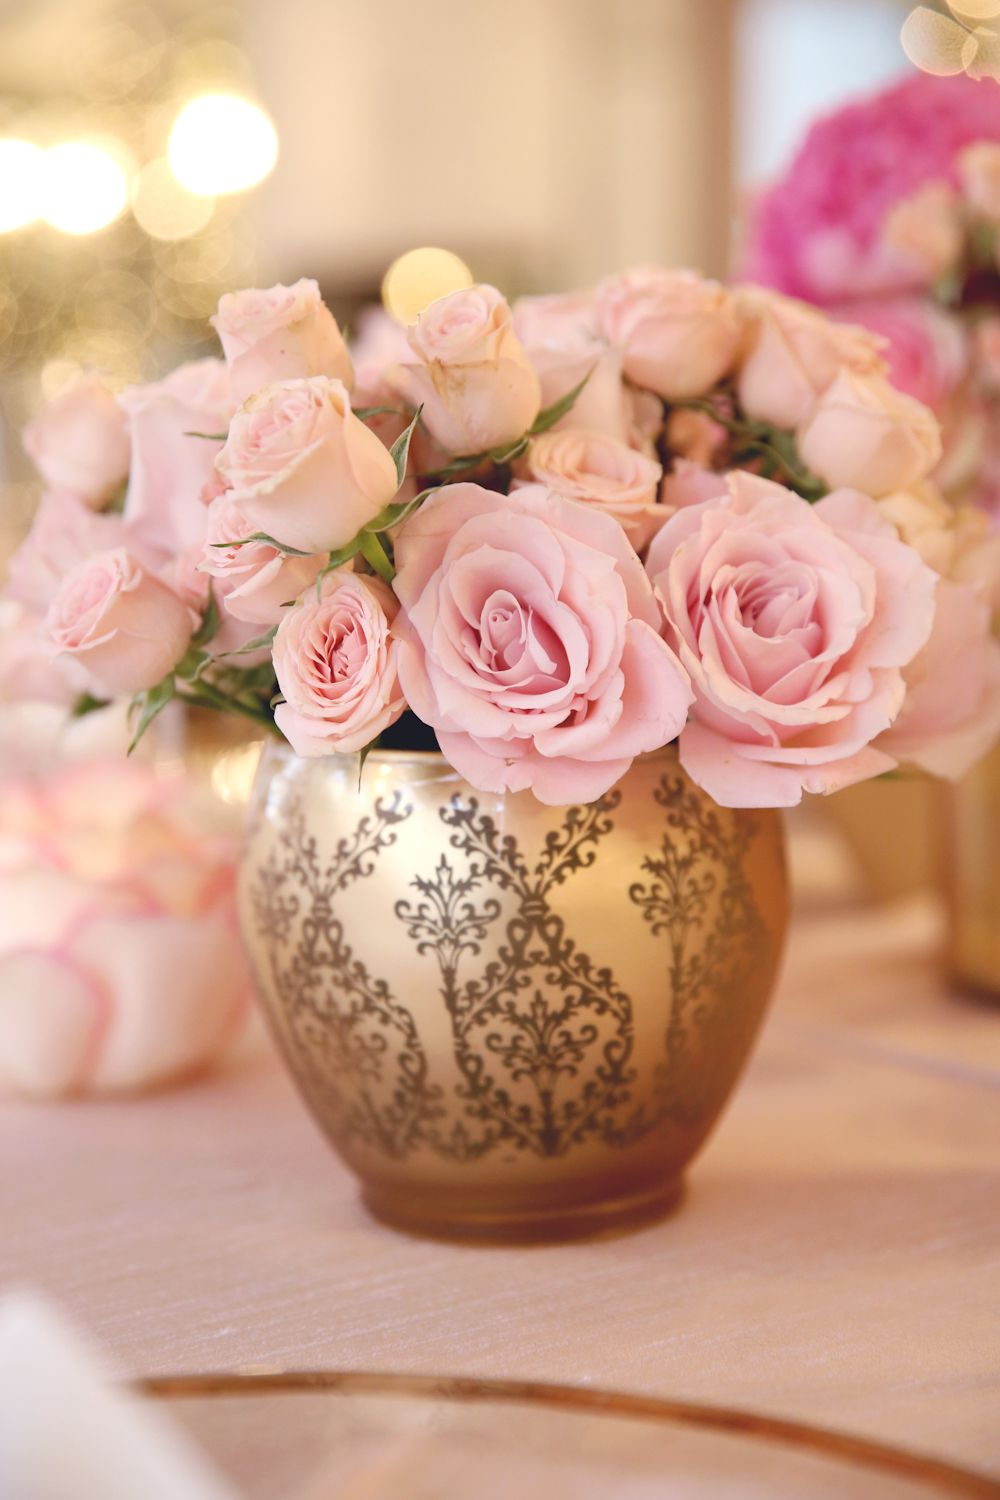 Pink gold a magical combo for a shower dear mila a pretty in pink gold a magical combo for a shower dear mila a vase of flowersroses reviewsmspy